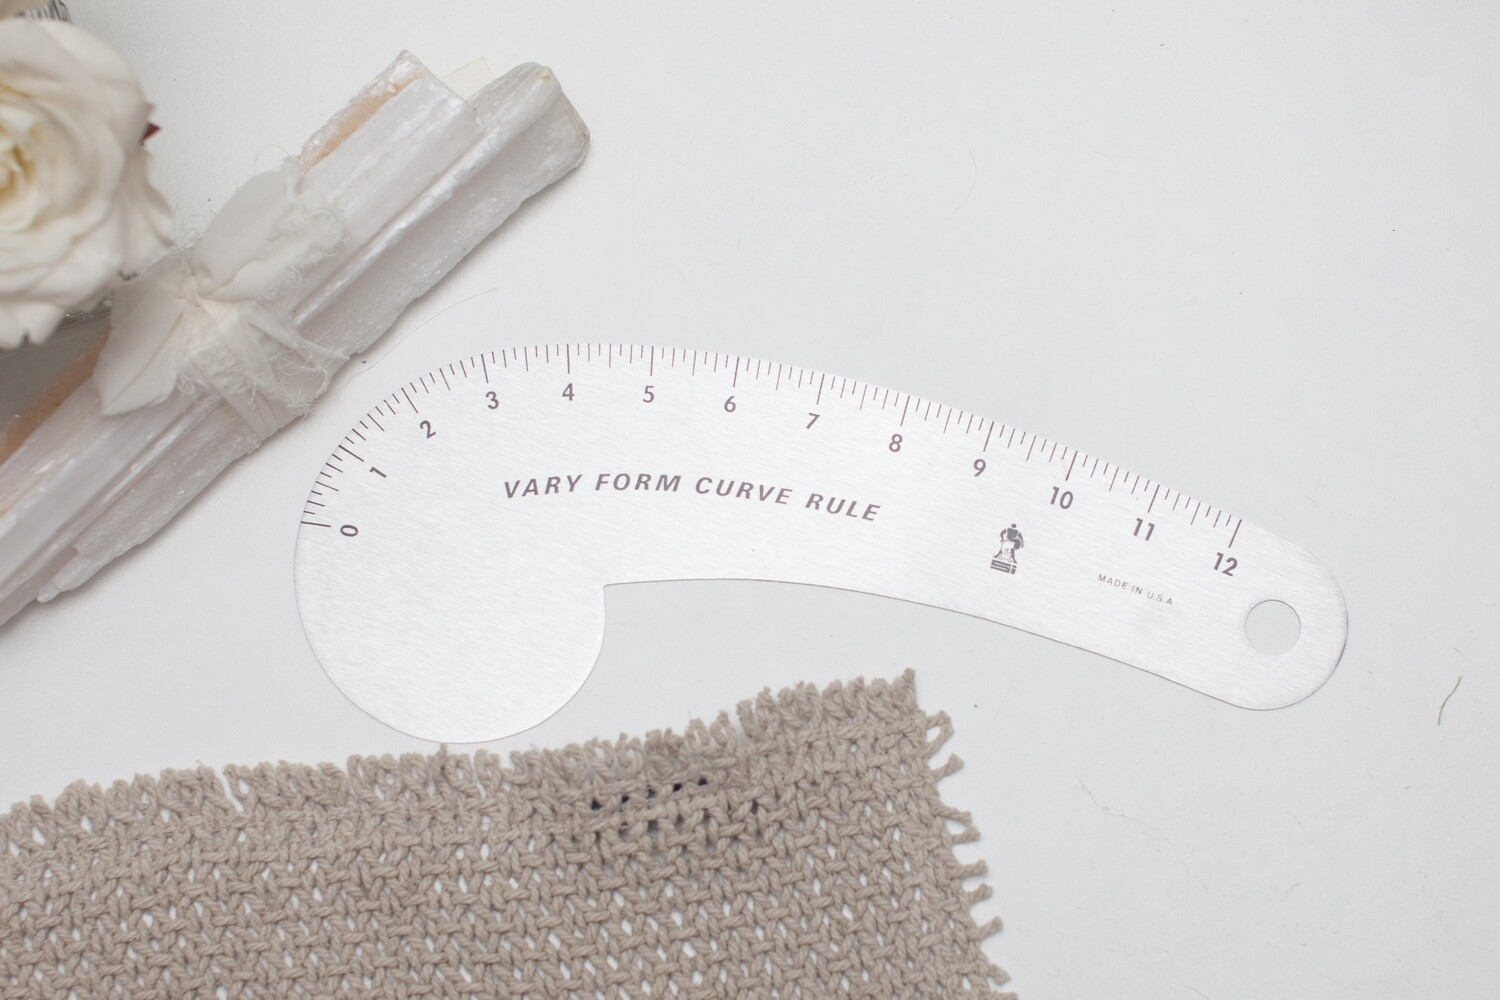 CURVE RULER 12"